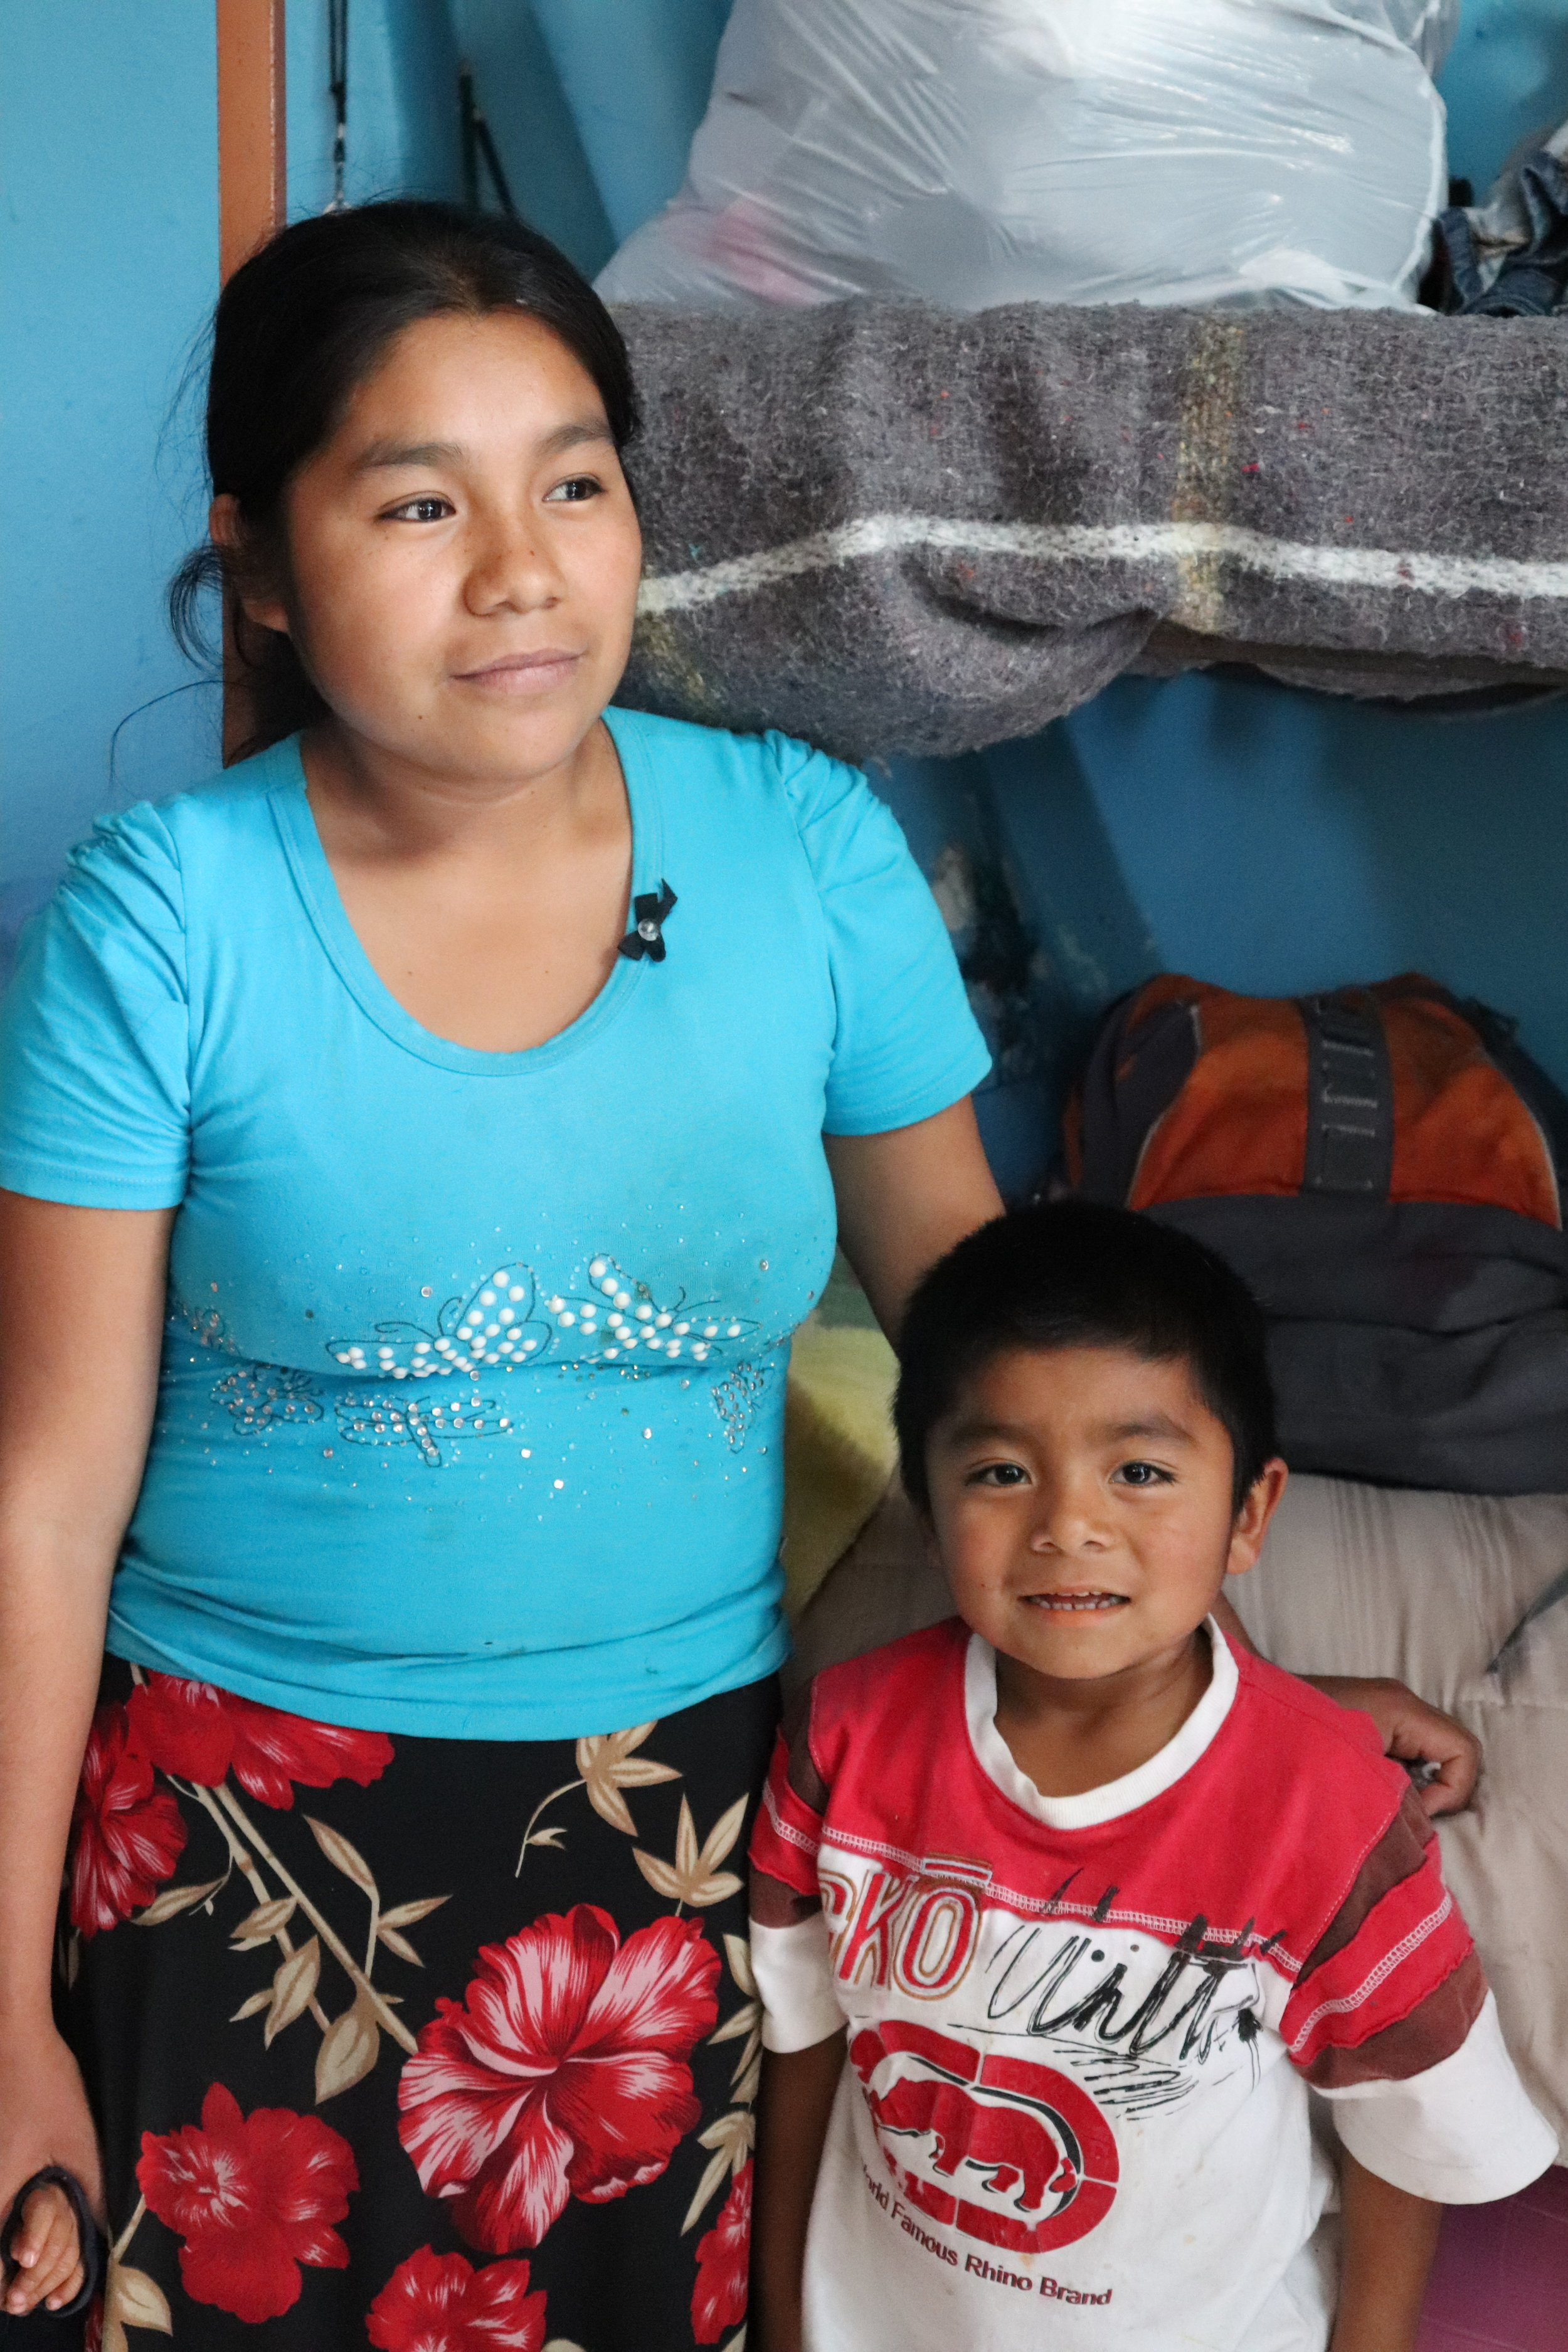 A 23-year-old mother traveling from Guerrero, Mexico. She is pictured with the oldest of her four children.